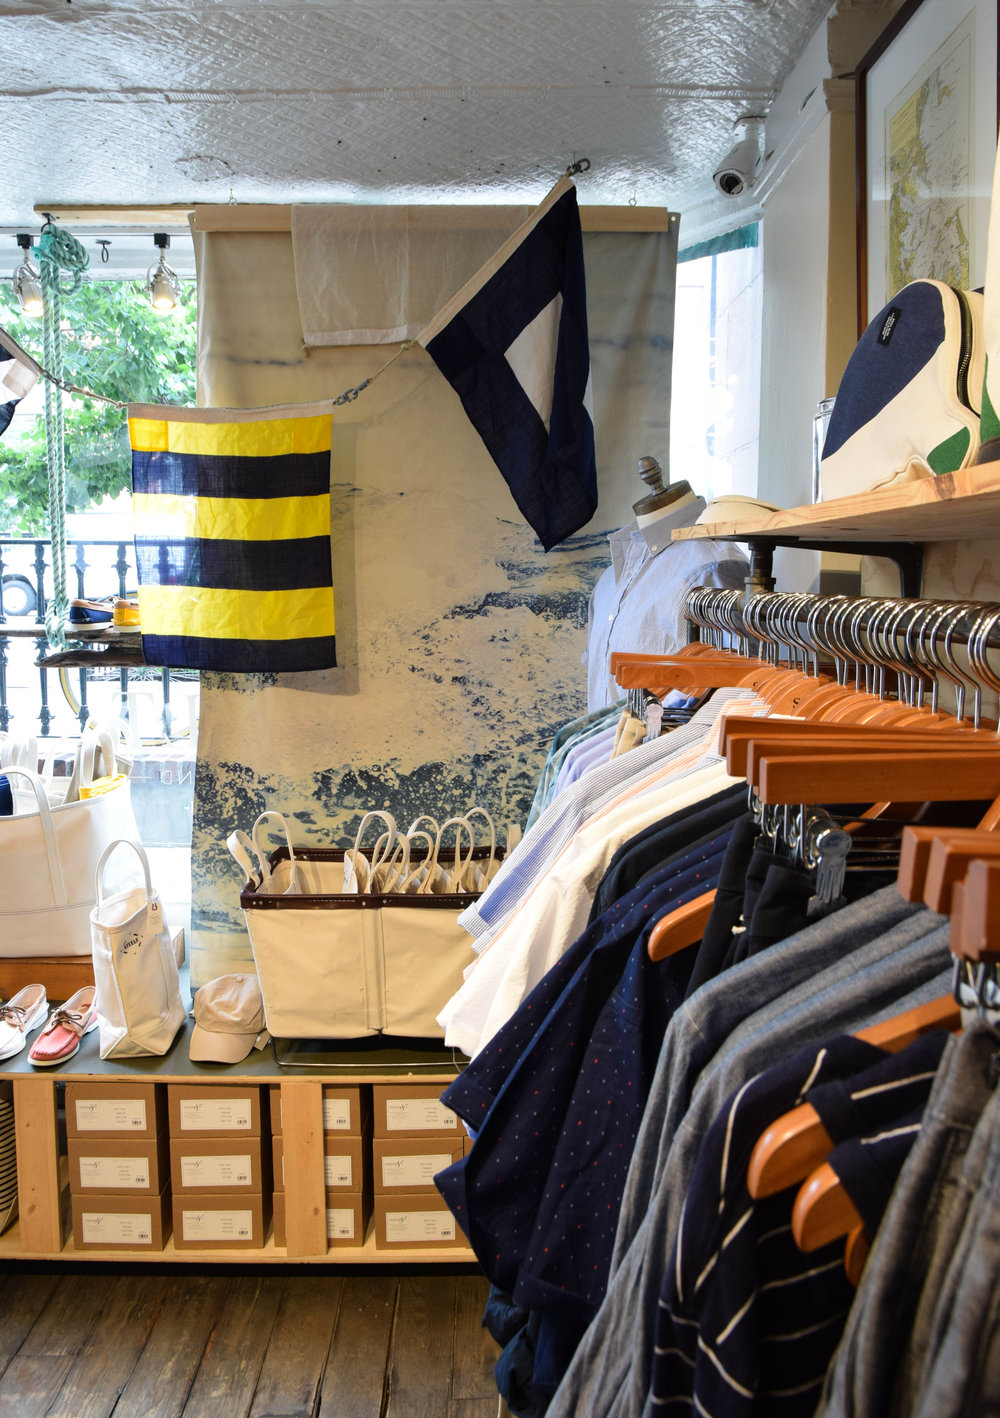 The store started out far trendier, Saul says, with air plants and a heavy lumbersexual influence. But over time, he's steered it toward a more timeless, regionally inspired collection of clothing. There are statement pieces, but most of the things for sale are designed stylistically and constructionally for long term everyday wear.